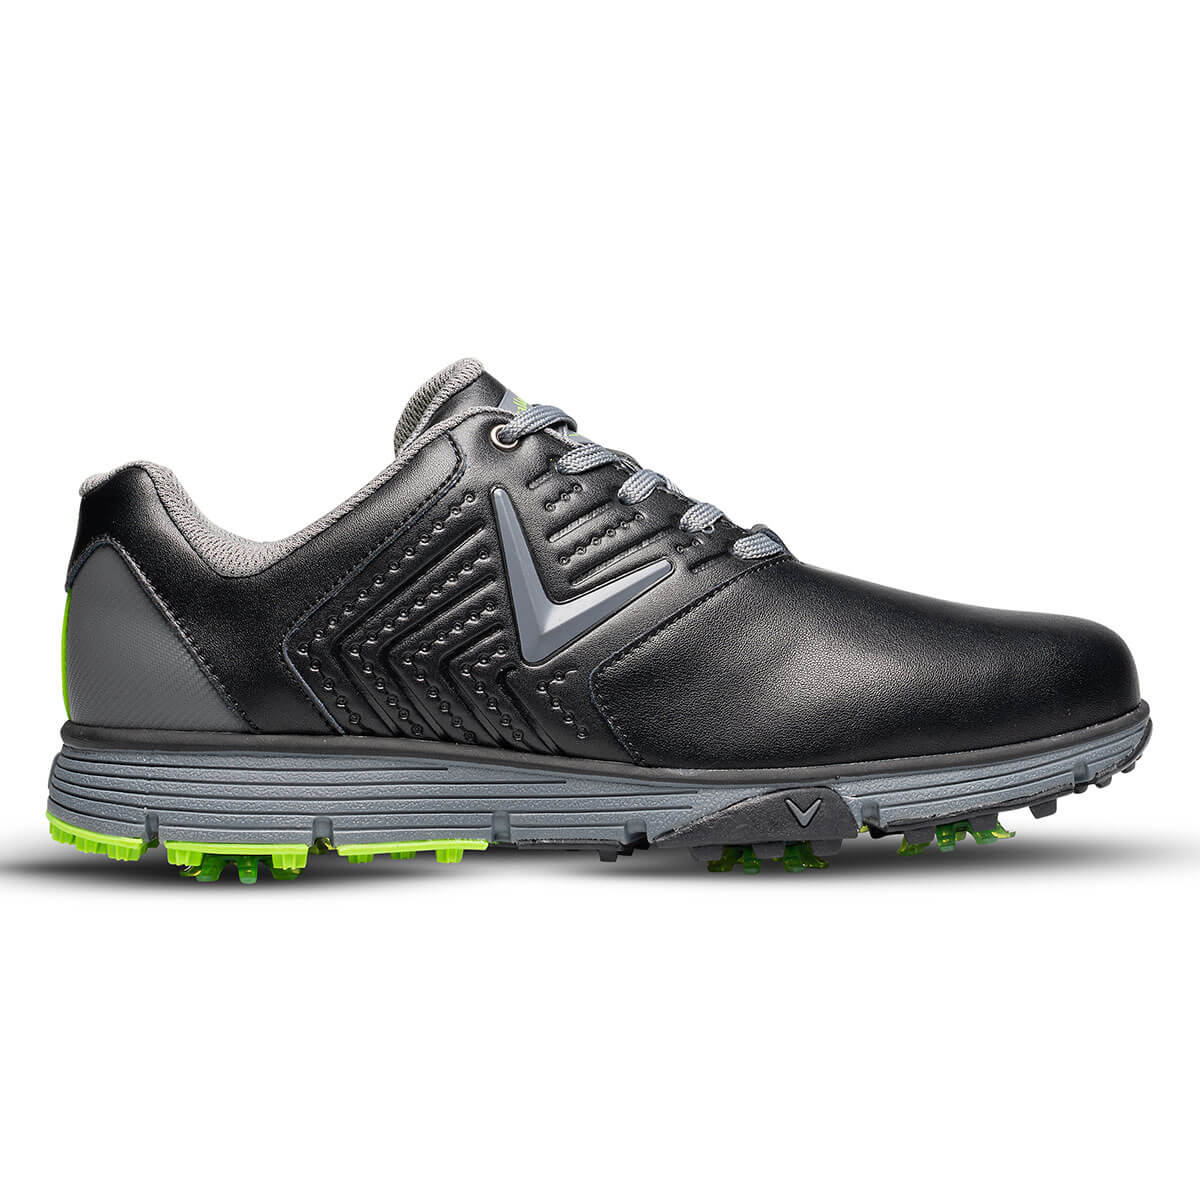 Callaway-Golf-Mens-2019-Chev-Mulligan-Waterproof-Leather-Golf-Shoes-29-OFF-RRP thumbnail 5